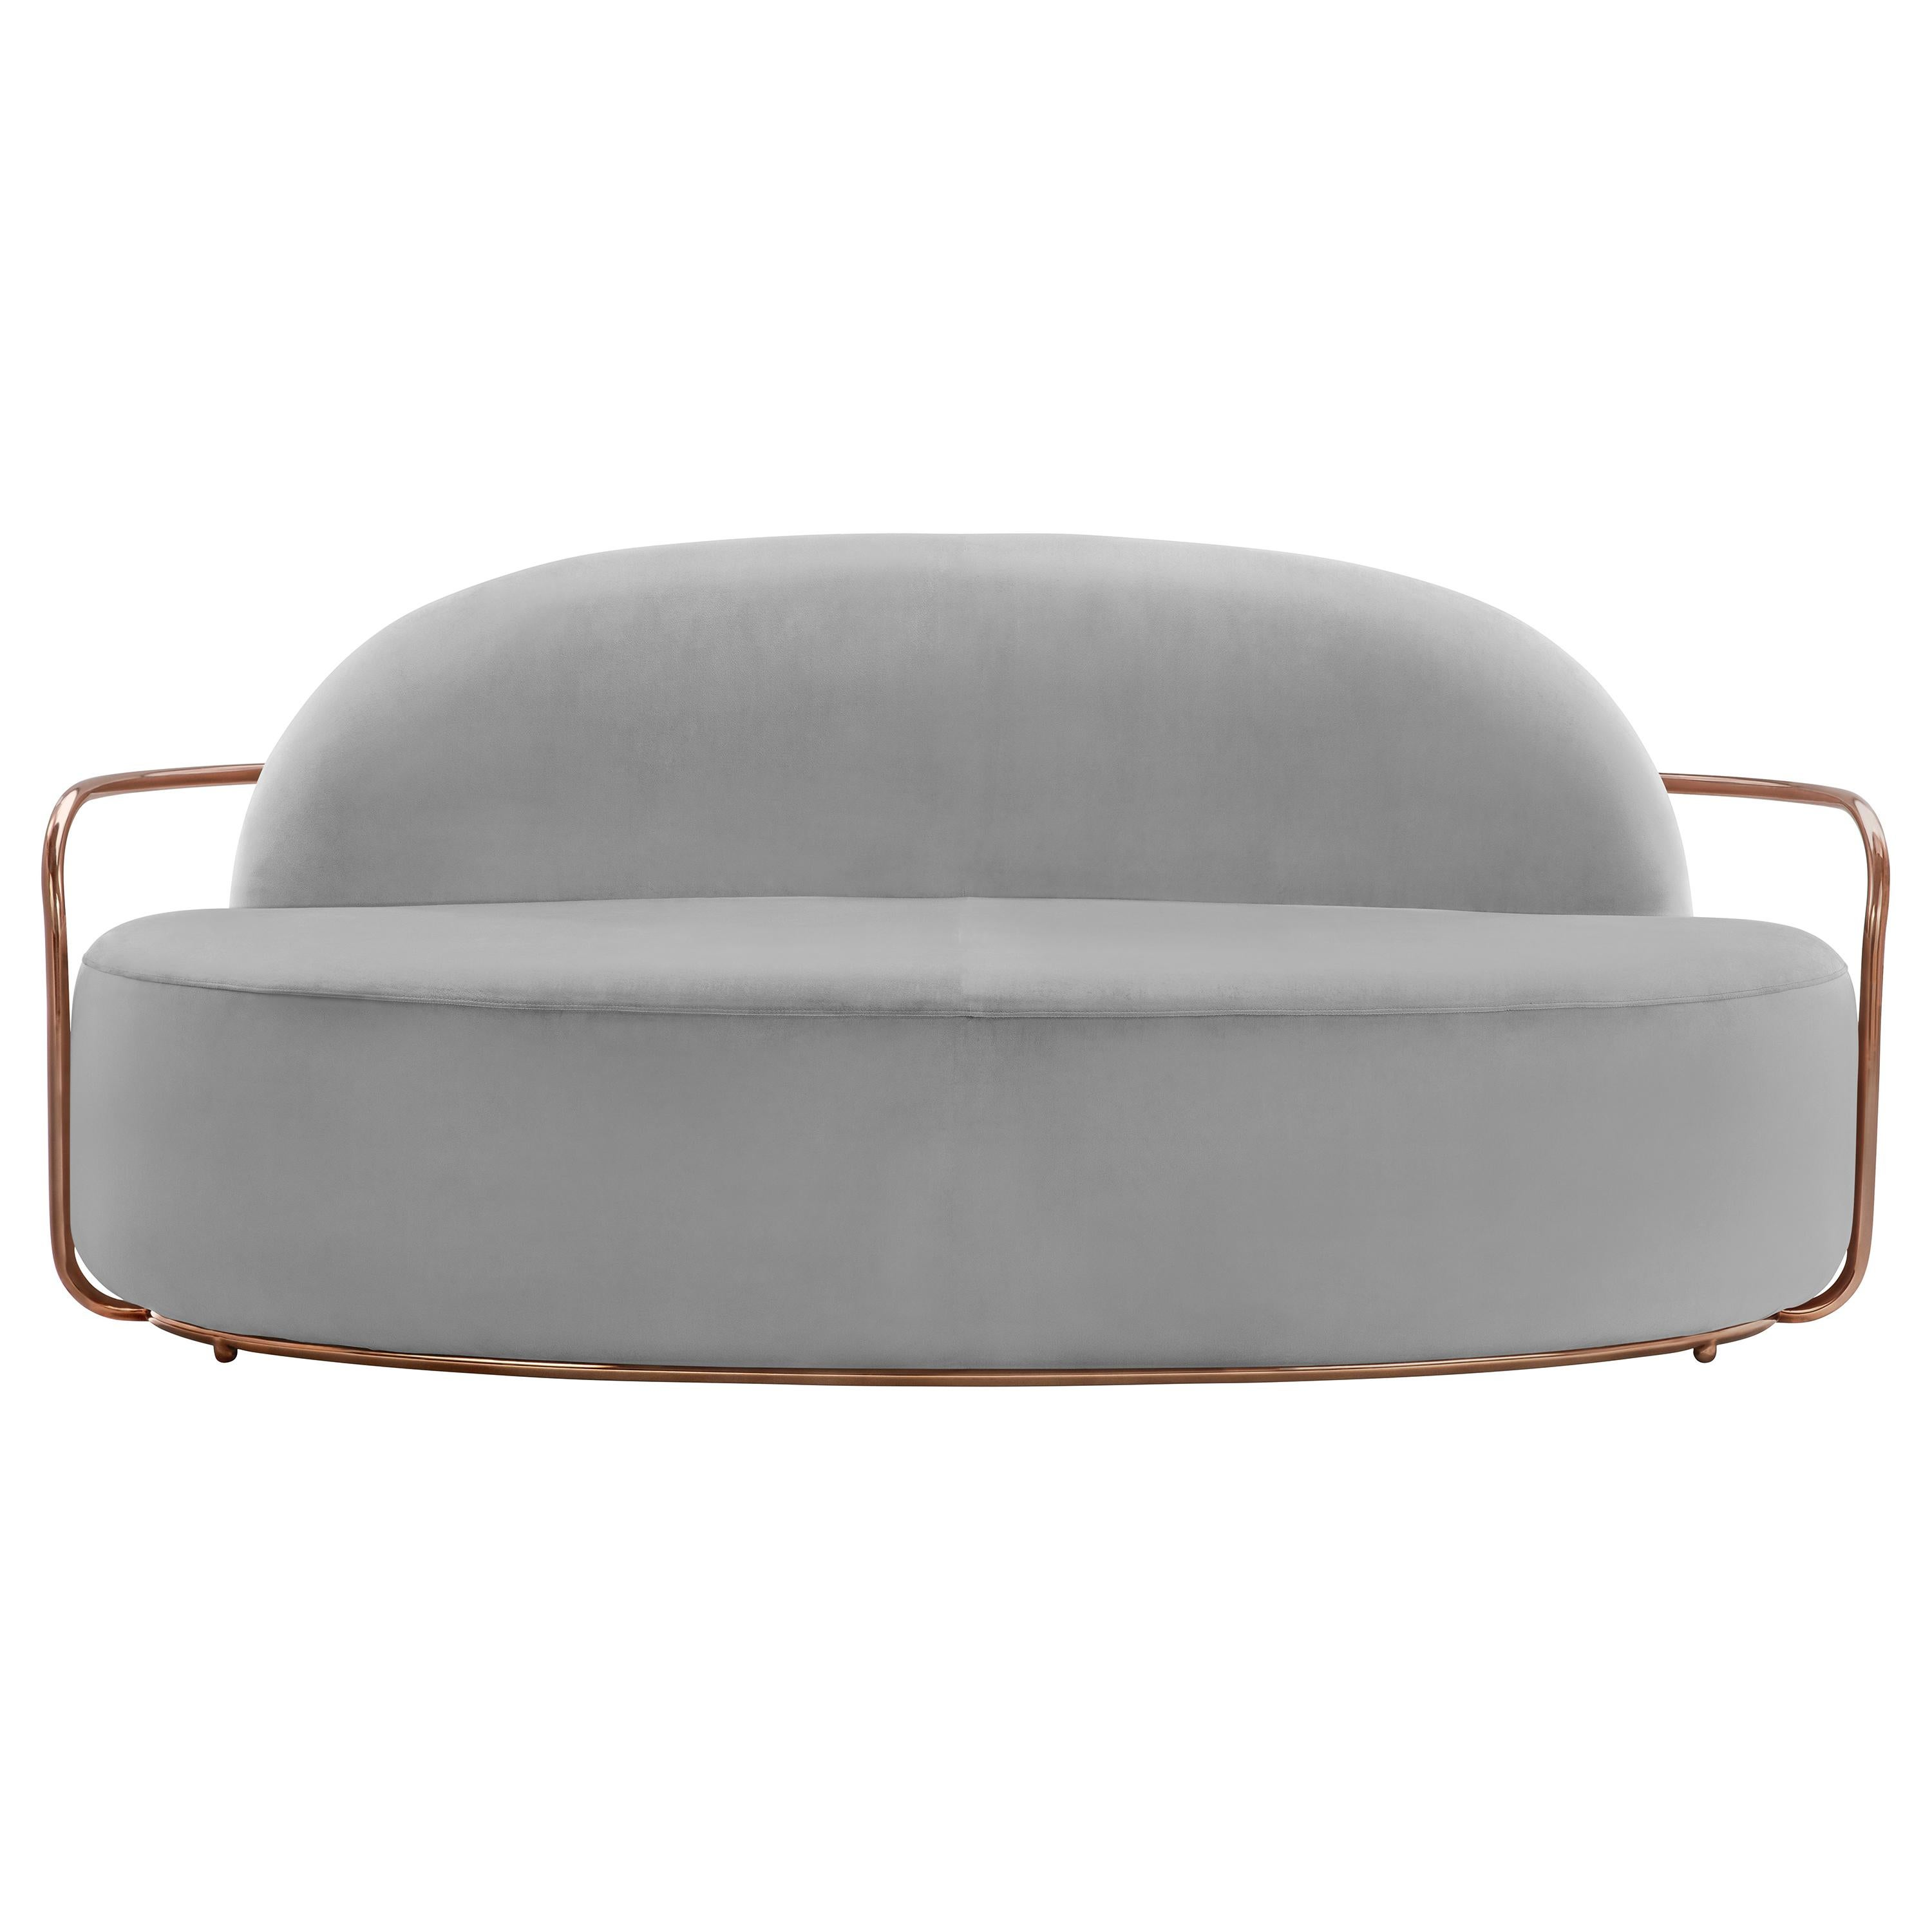 Orion 3 Seat Sofa with Plush Gray Velvet and Rose Gold Arms by Nika Zupanc